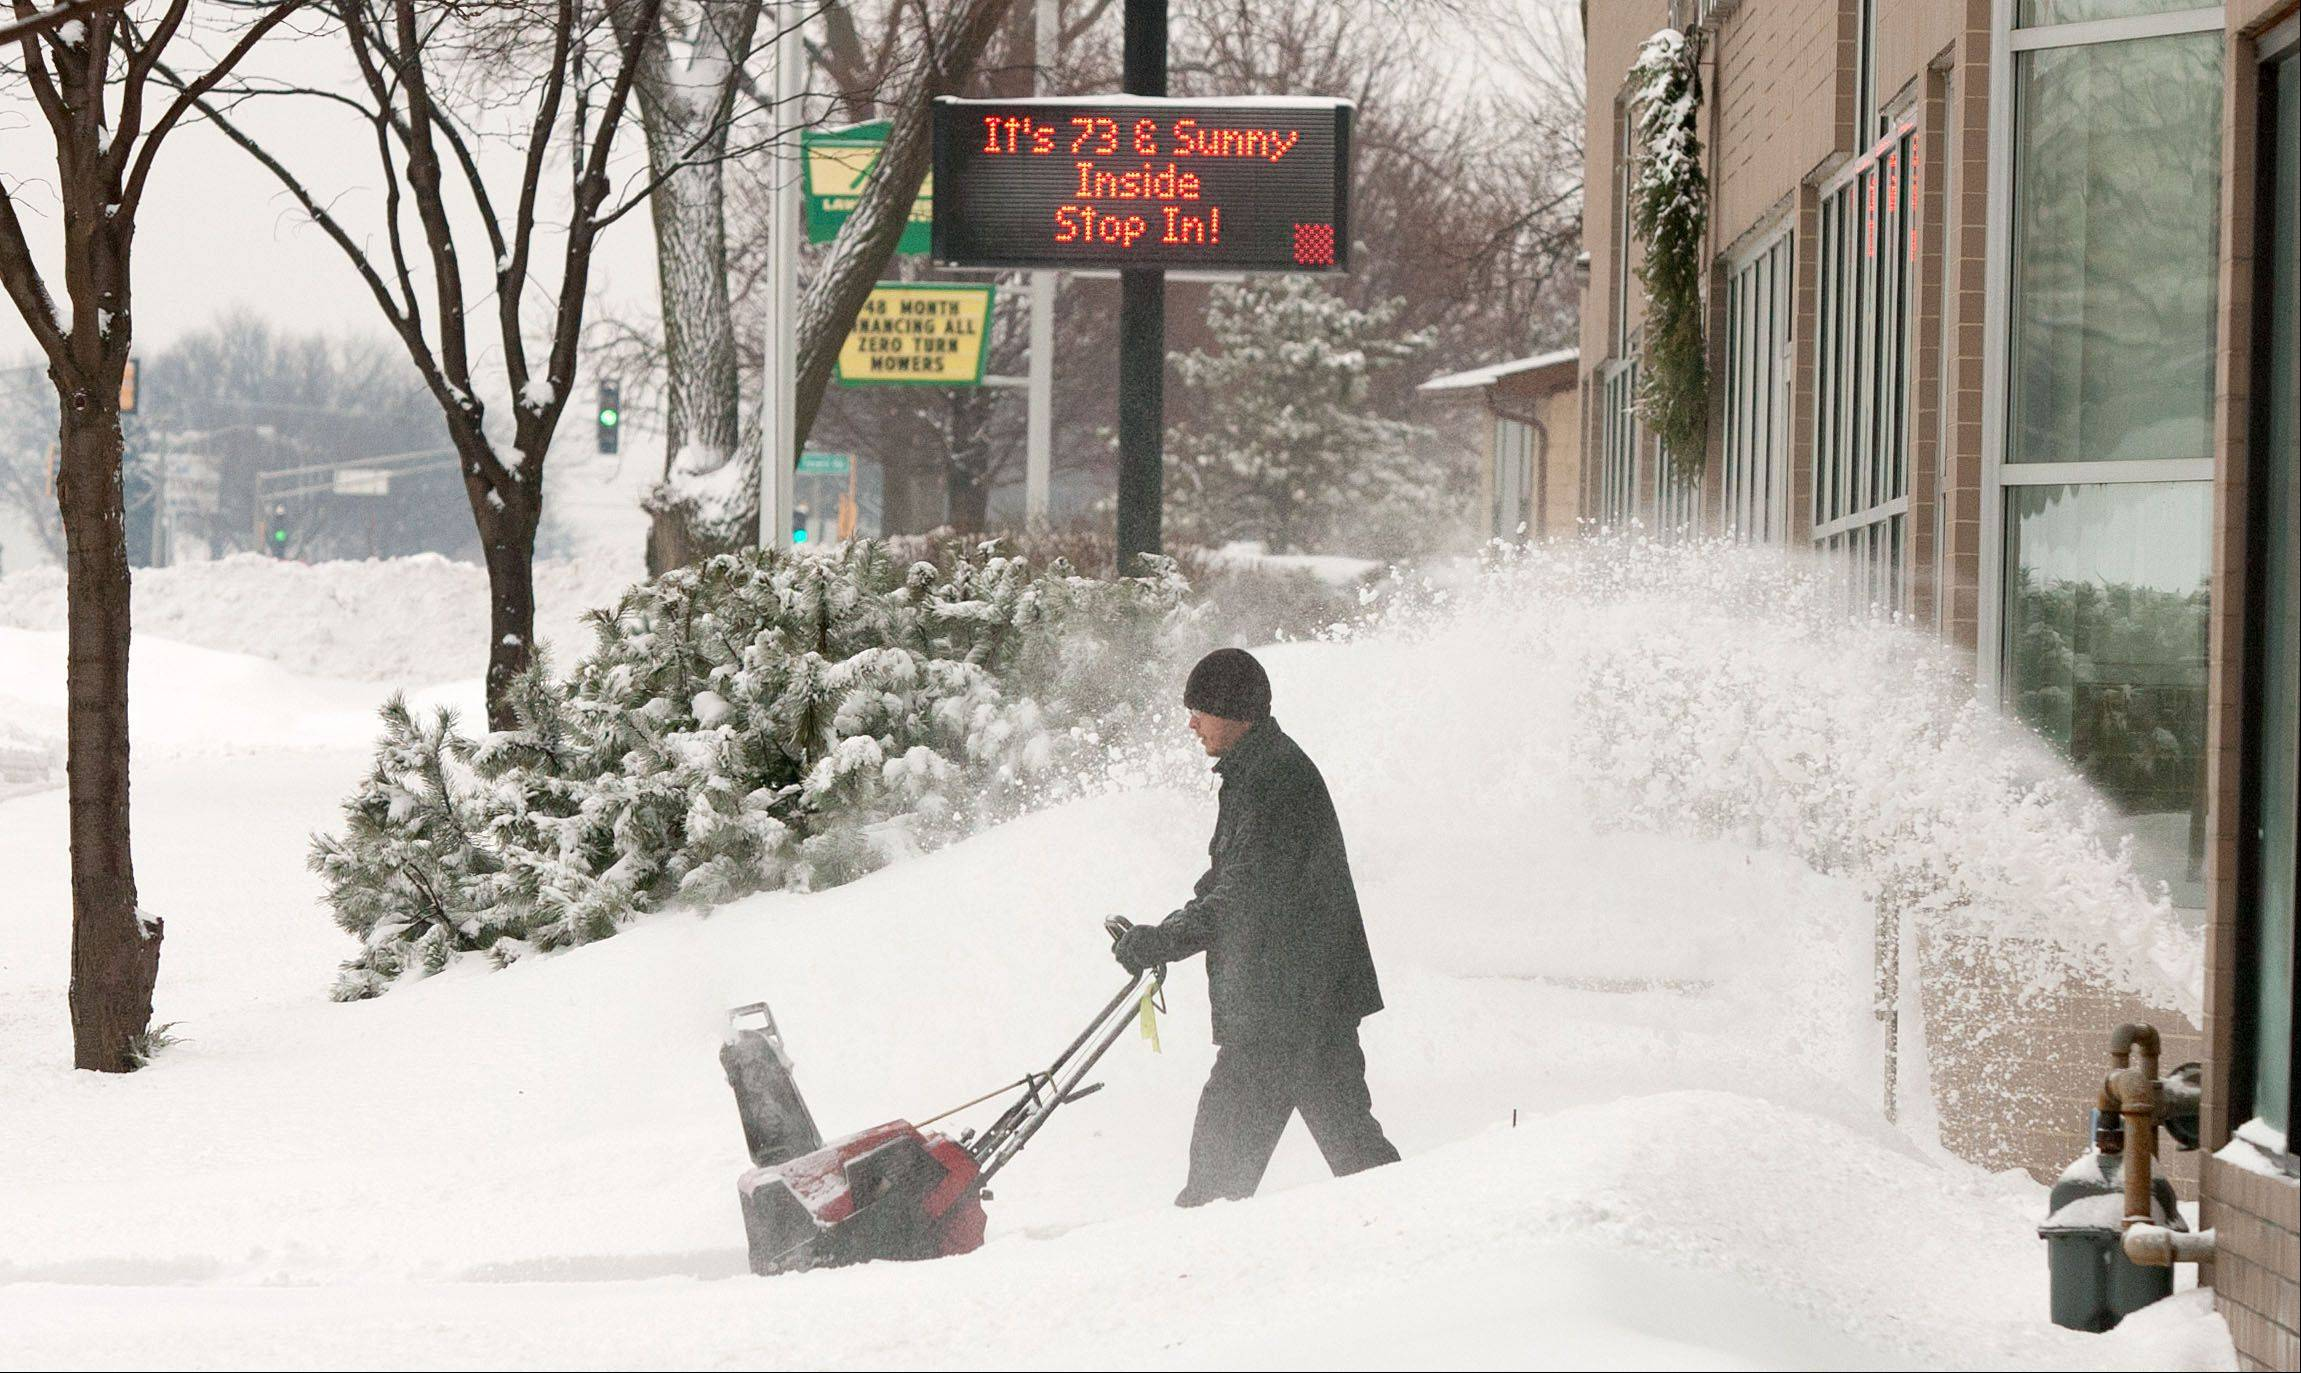 It may be 73 degrees inside the Heritage Harley Davidson Lisle dealership, but Javier Pena knows it is not that temperature outside, as he plows another round of snow.